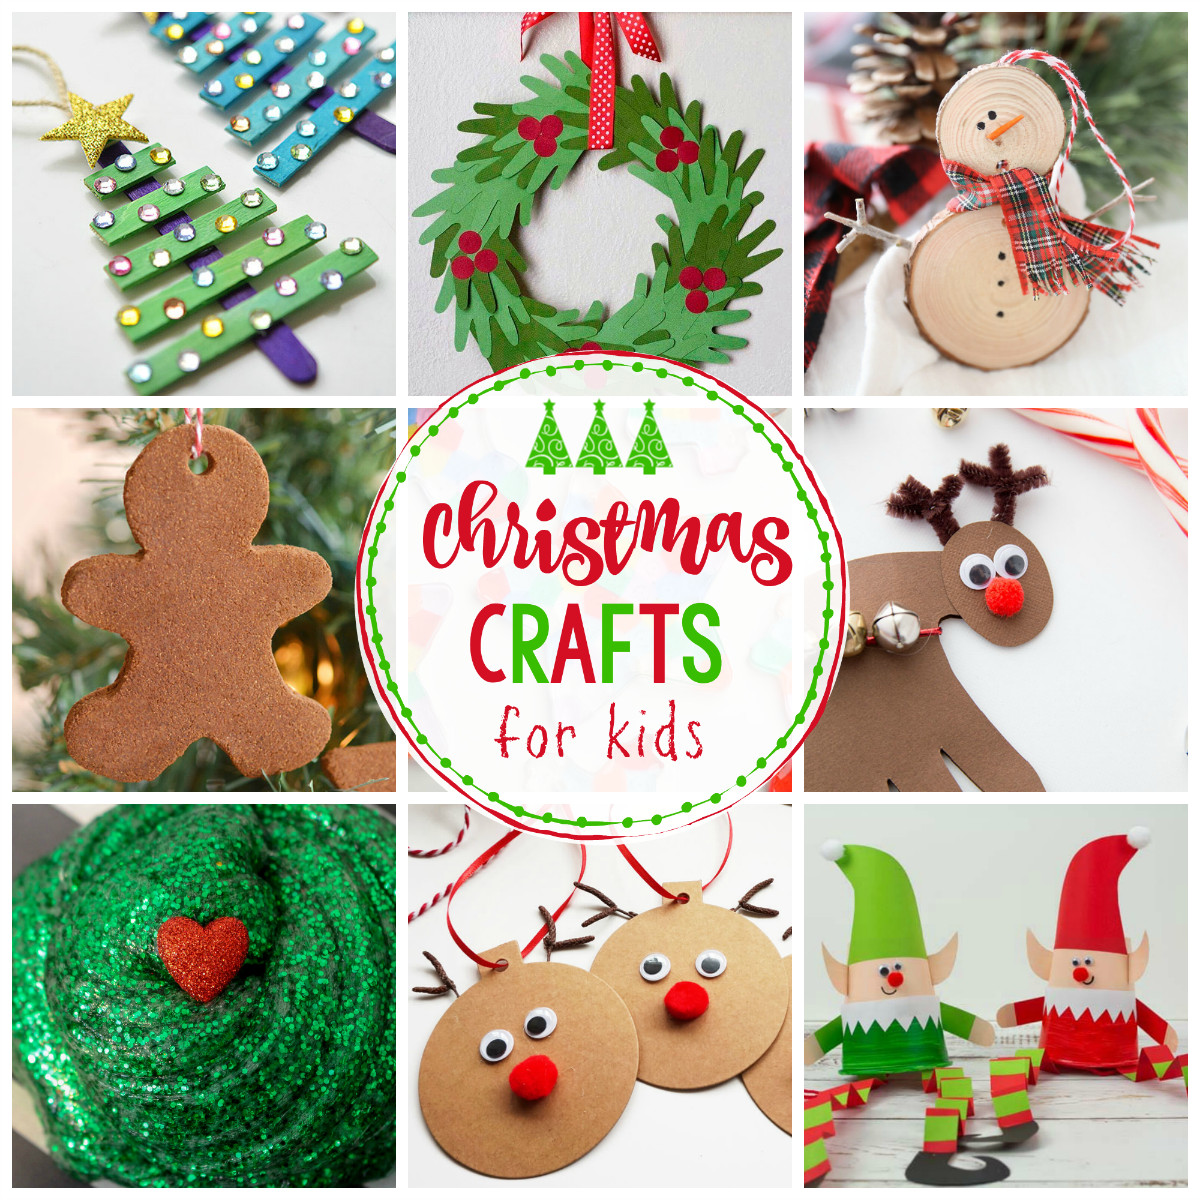 Best ideas about Crafting Ideas For Kids . Save or Pin 25 Easy Christmas Crafts for Kids Crazy Little Projects Now.